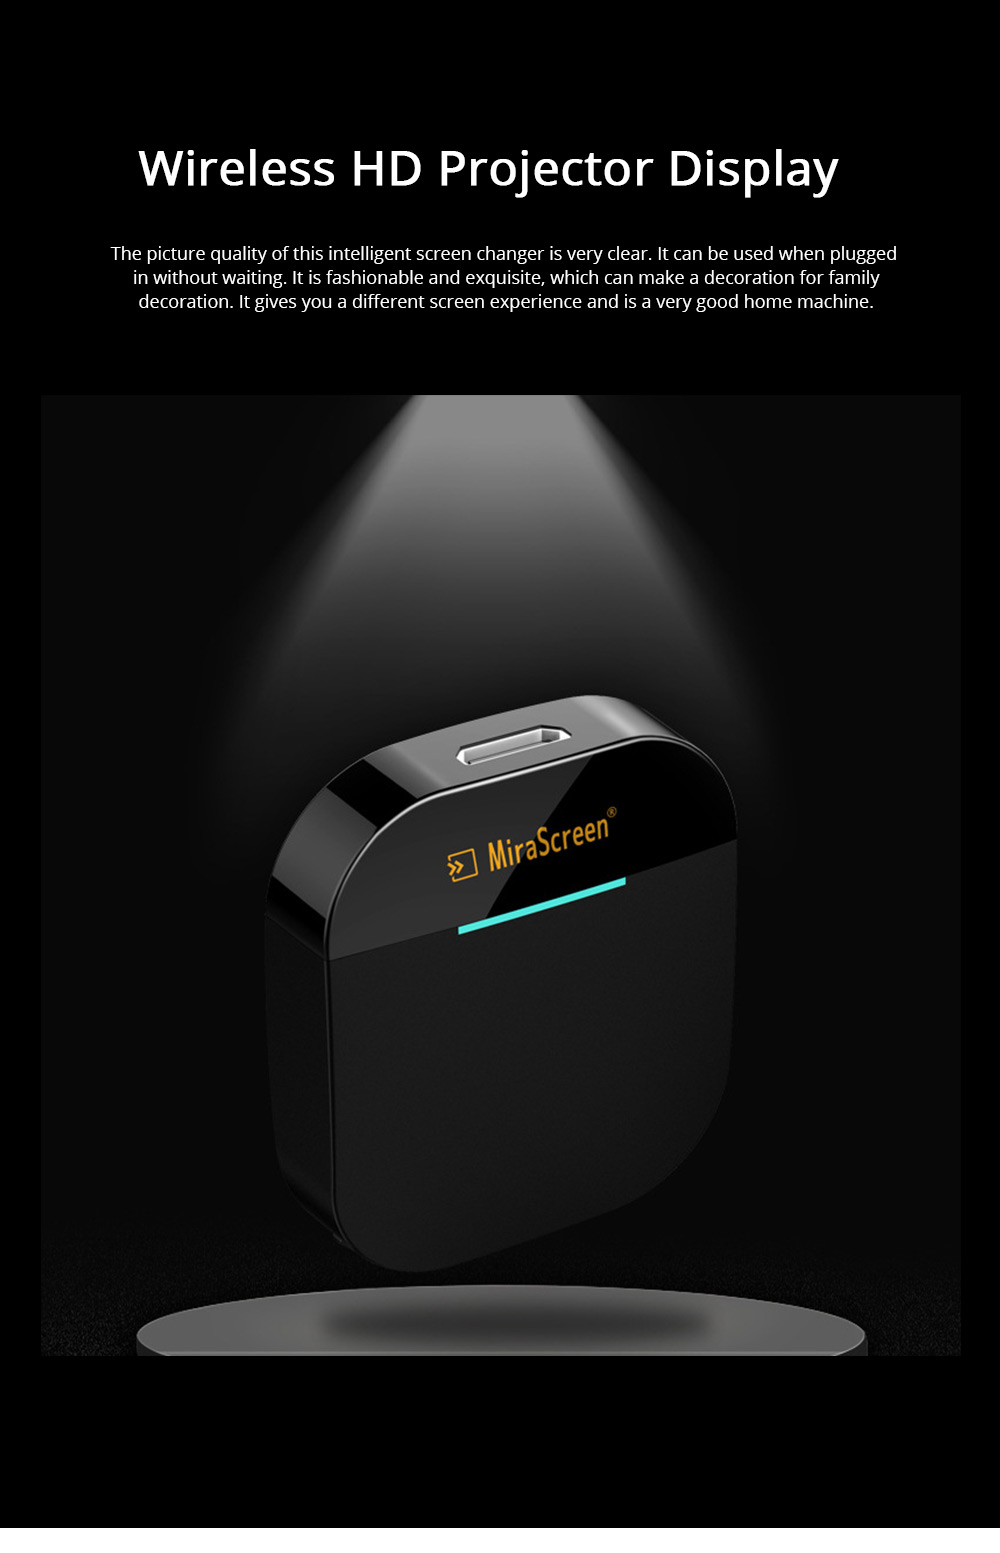 Wireless HD Projector Display Mobile Phone Connected TV Artifact Screen Saver Projector Converter Display Receiver 0